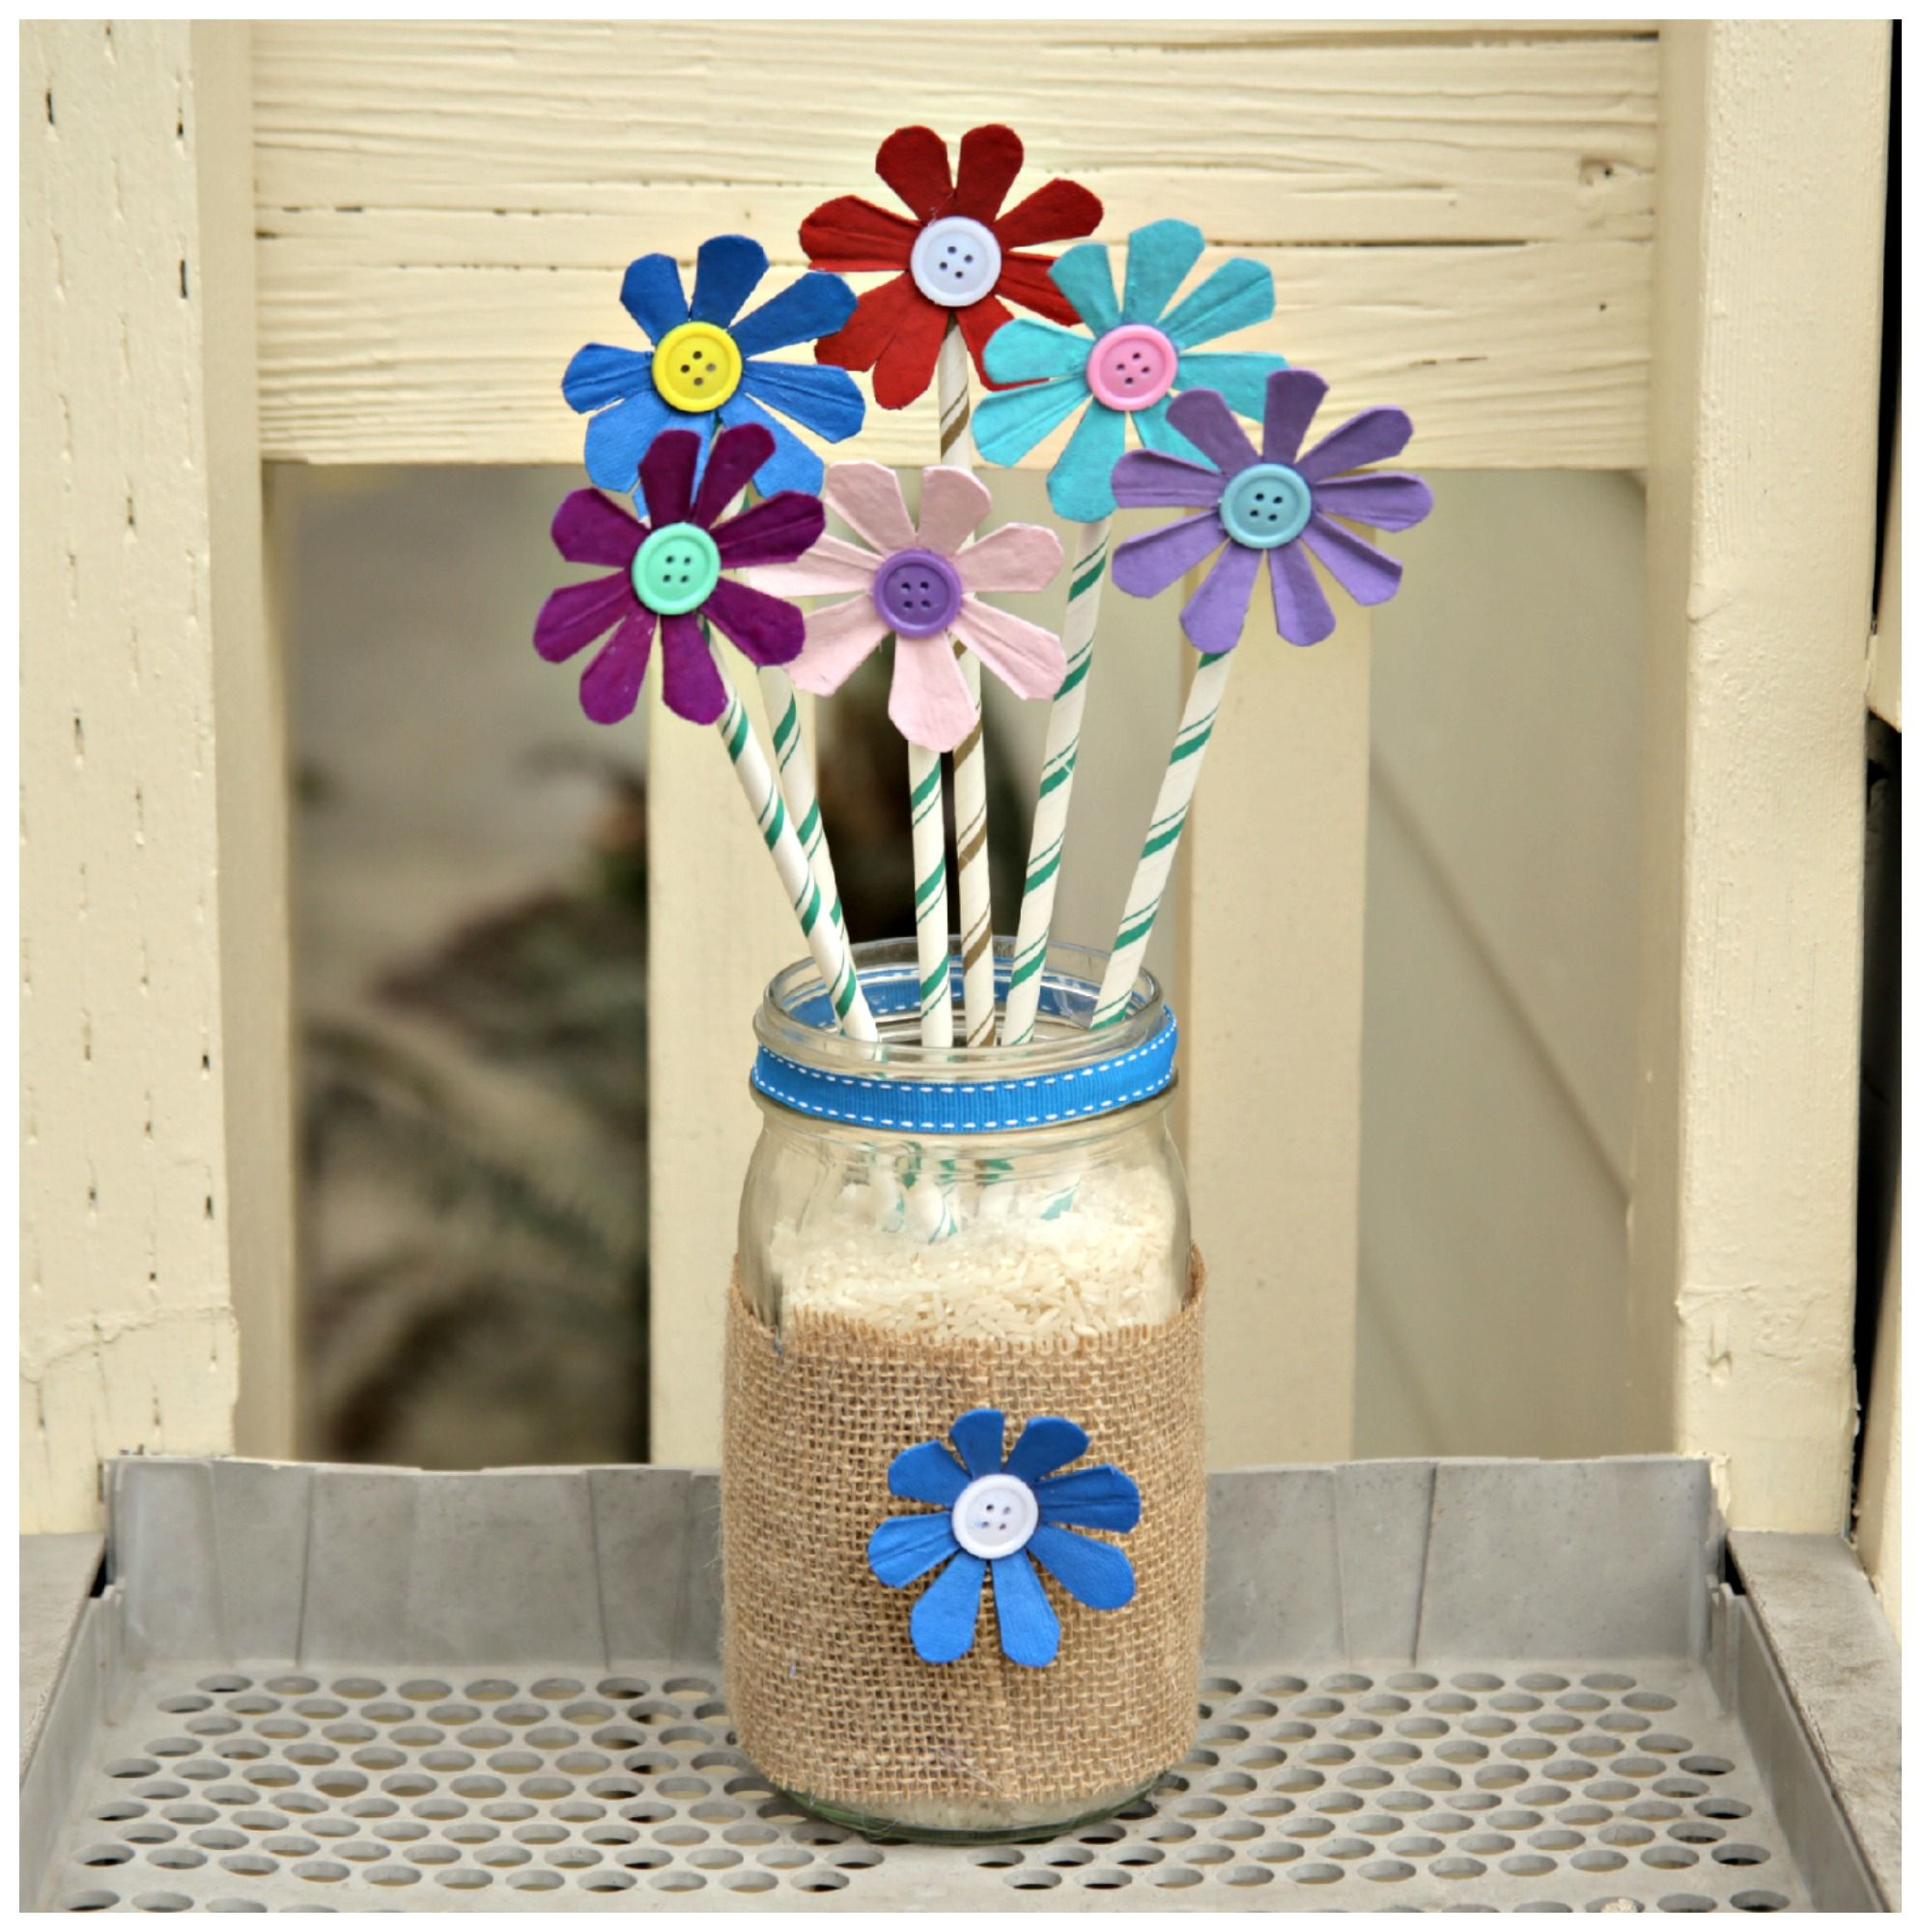 Diy Arts And Crafts Milk Carton Recycled Crafts Recycled Egg Carton Flower